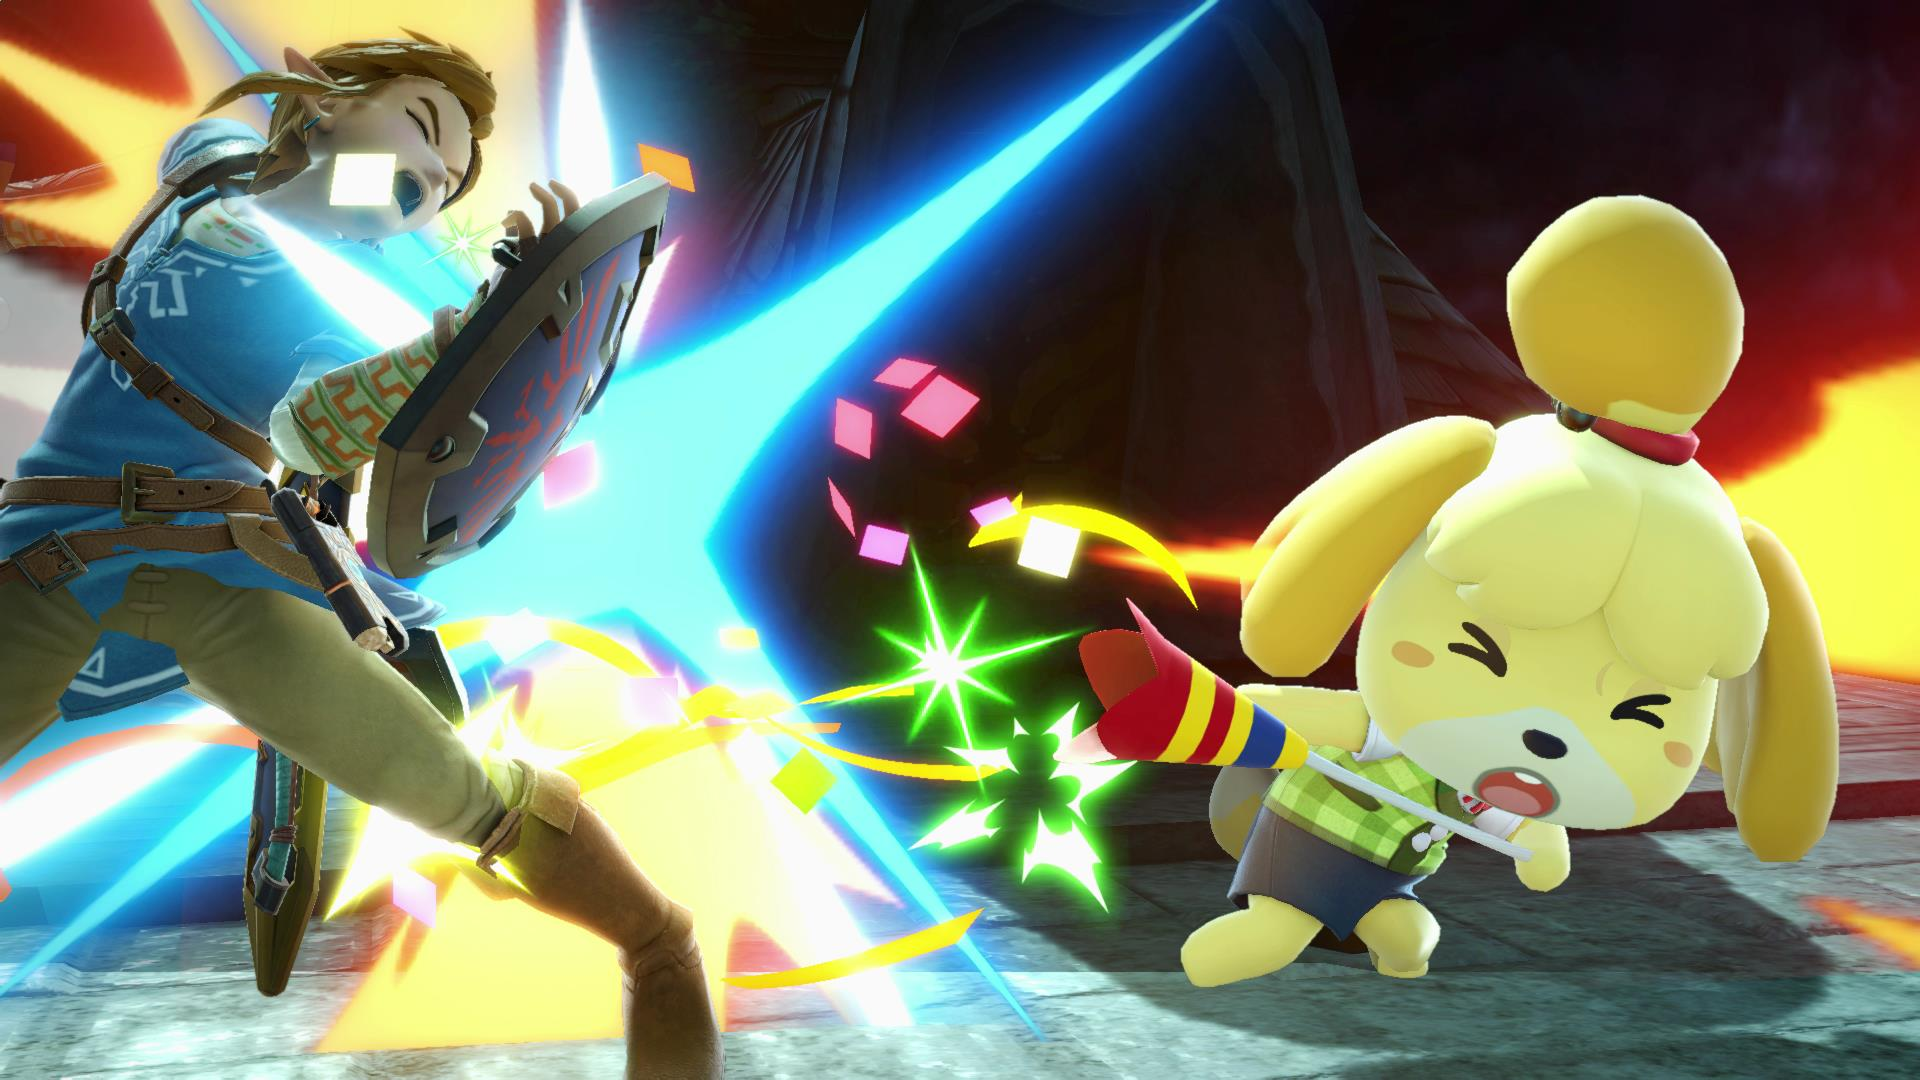 EVO will be an online event this year, won't include Super Smash Bros. Ultimate